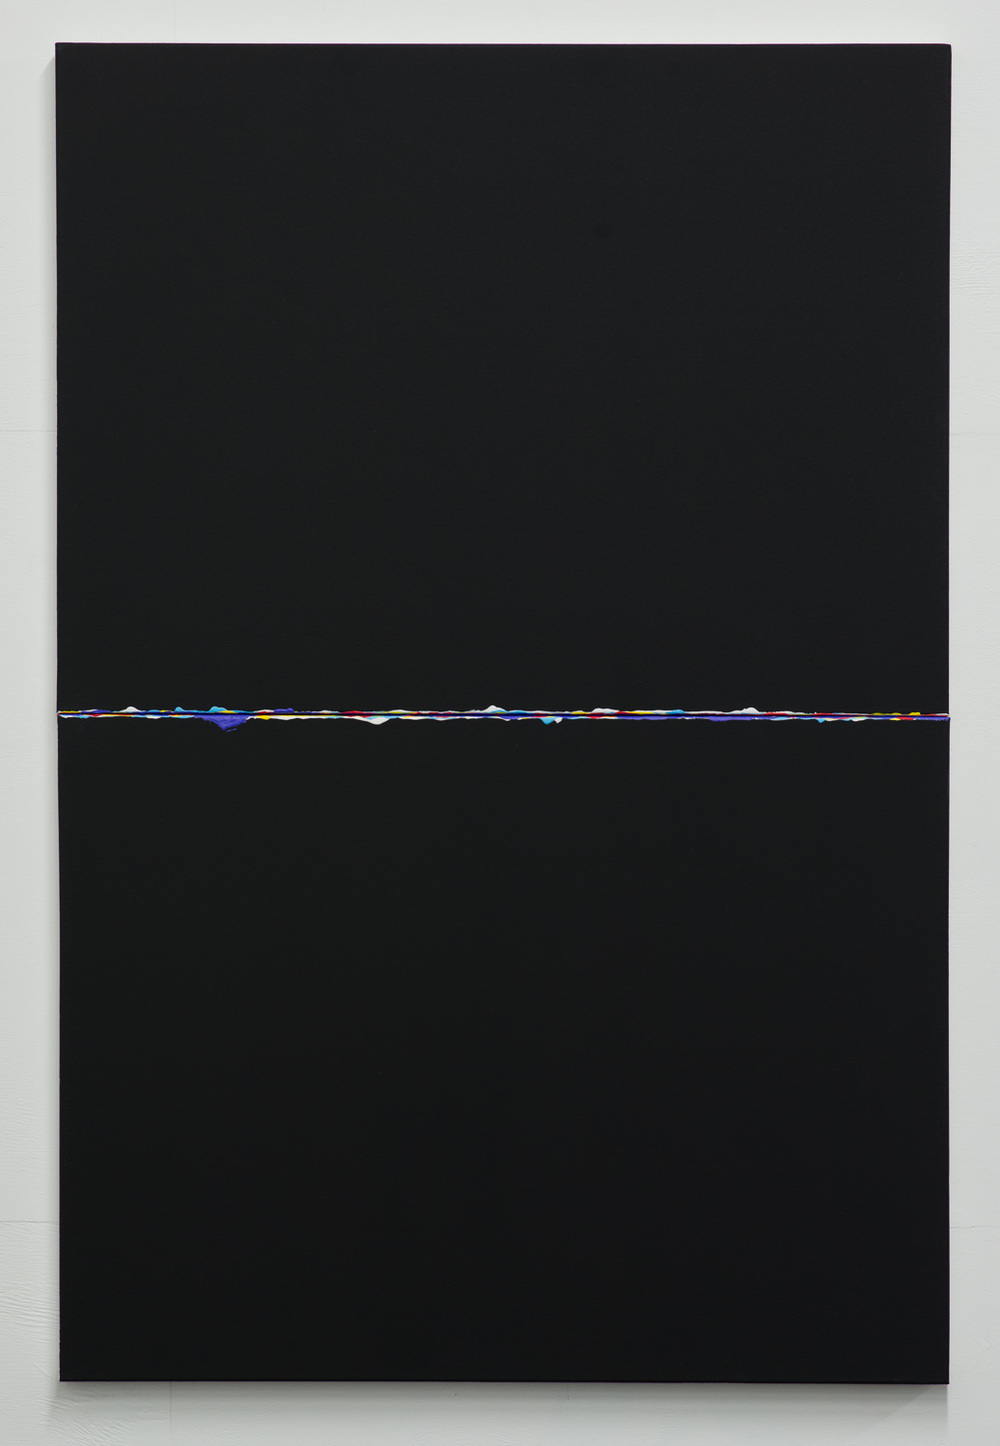 Parallel Streams  2015  Oil and acrylic on canvas  152.5 x 76 x 3.5cm   Enquire